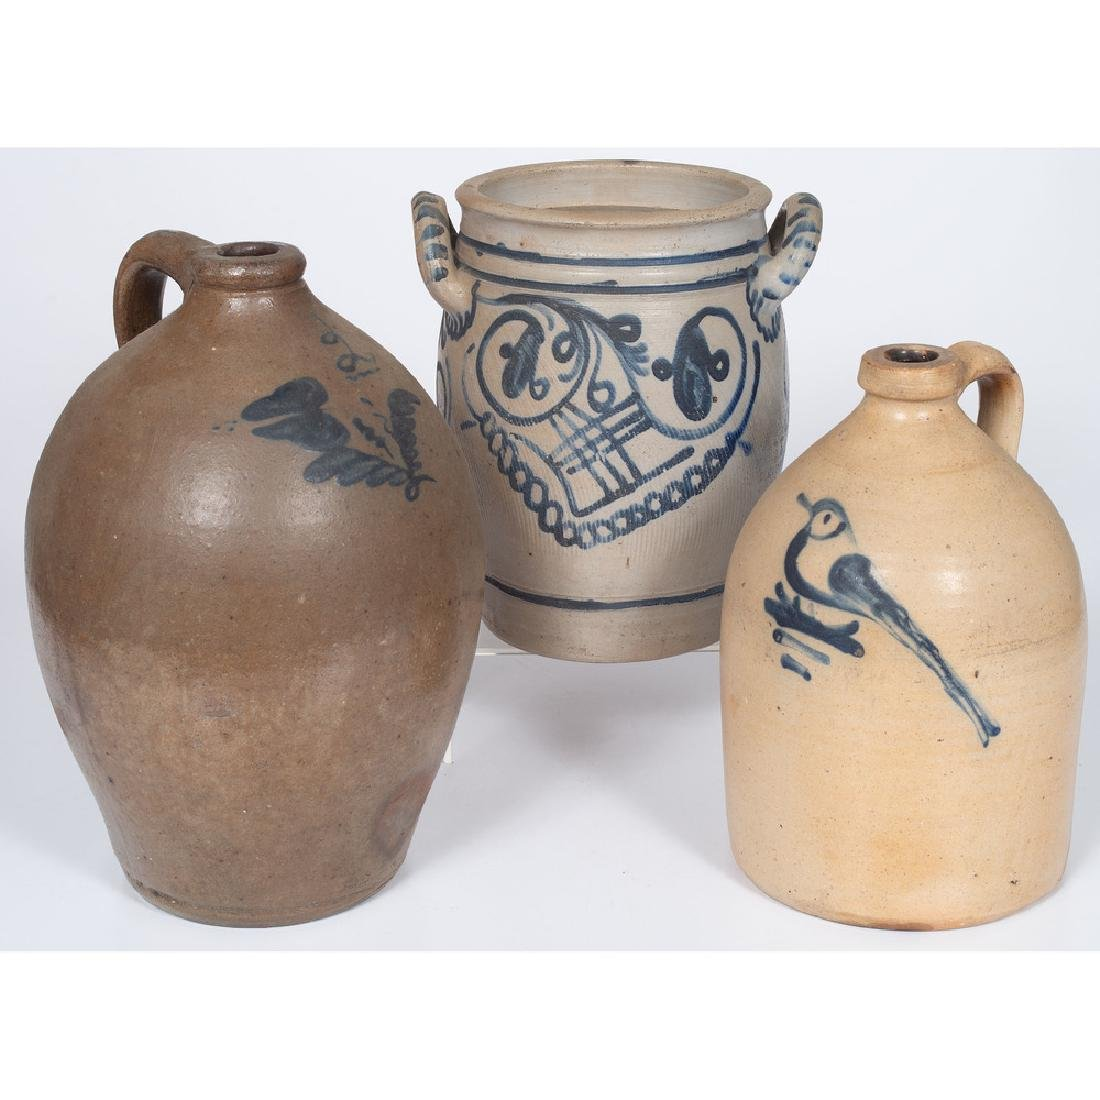 Stoneware Cobalt-Decorated Jugs and Crock